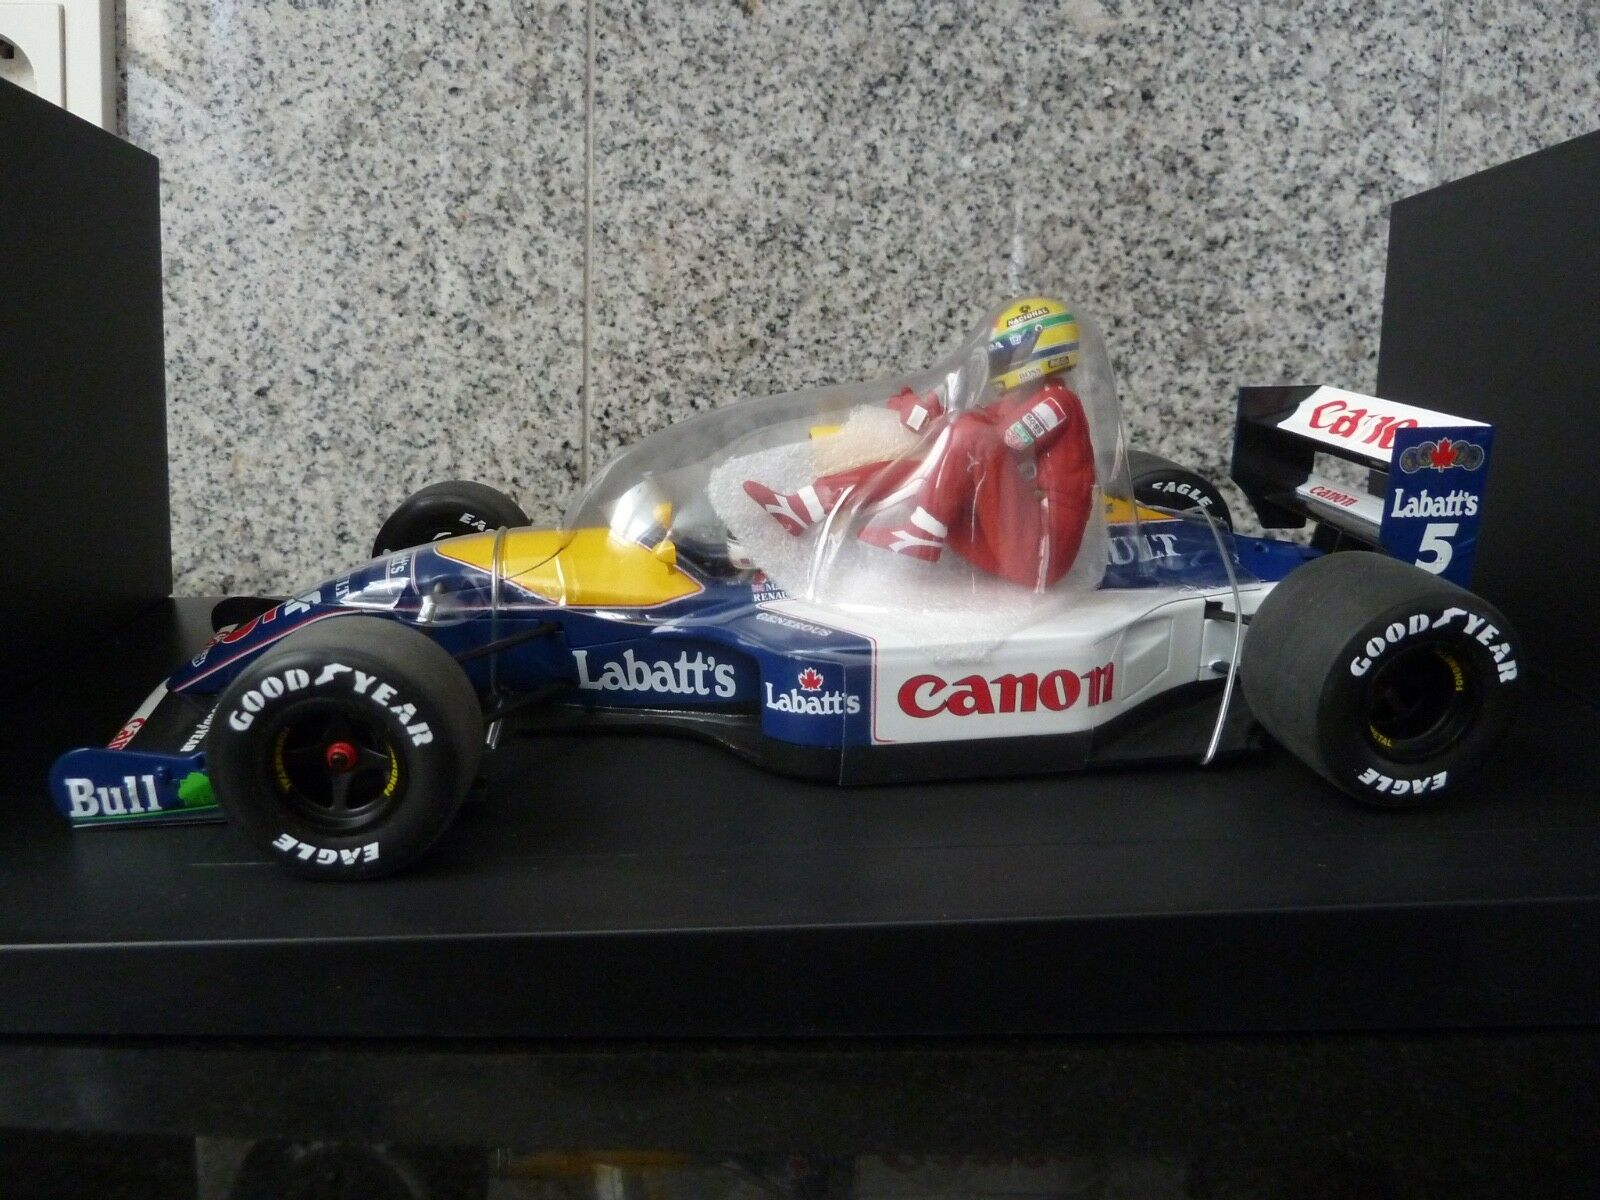 1 18 Minichamps, williams renault fw14, véase Mansell & senna taxi, British GP 1991